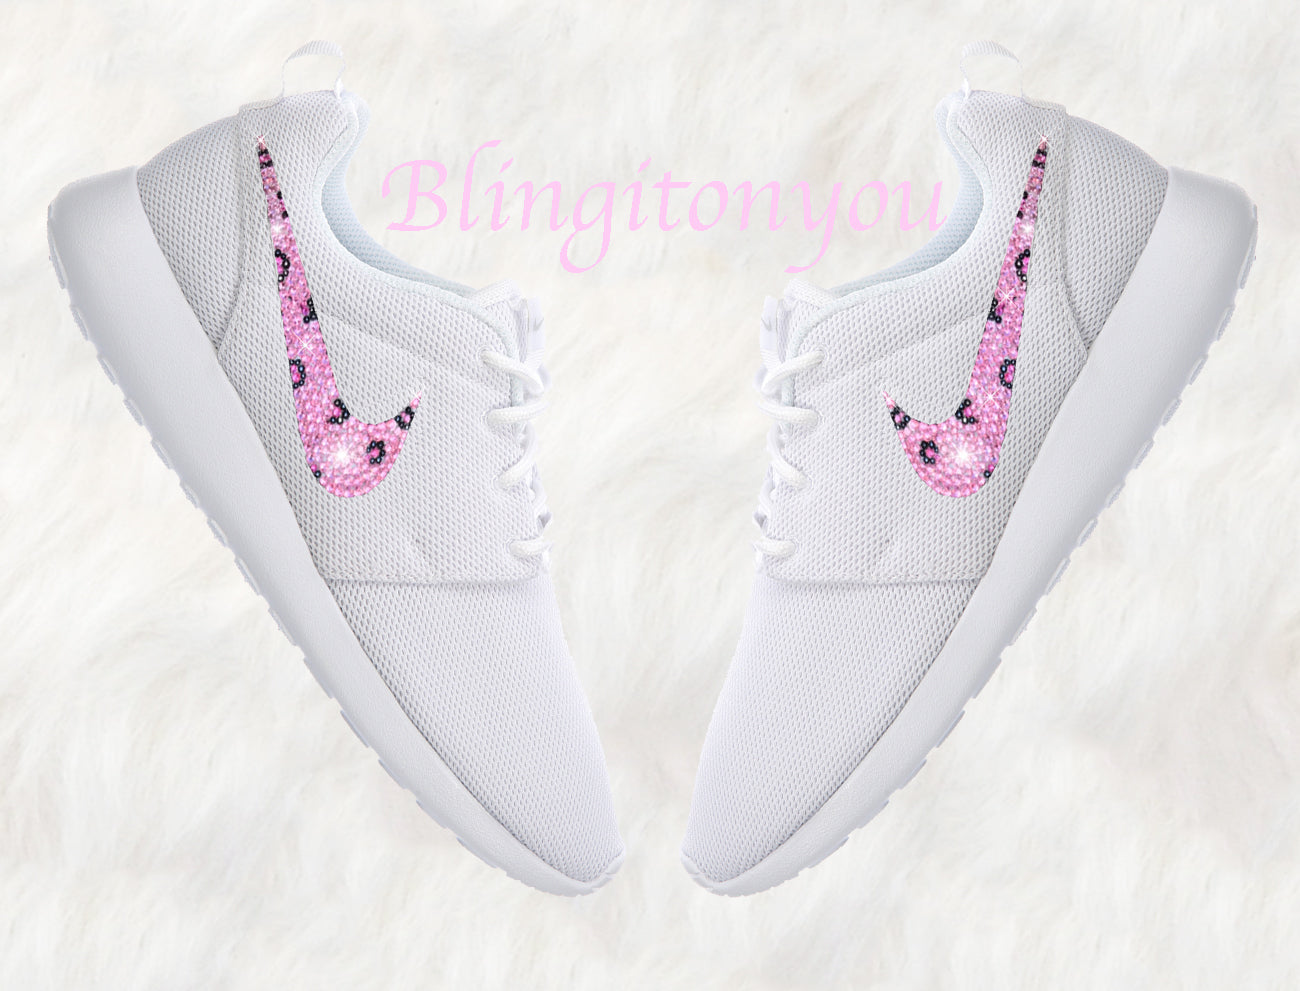 d08393fe6484 Swarovski Nike Roshe One Women s Shoes White Blinged Out With Leopard Pink  Swarovski - Swarovski Nike Shoes - Nike Bling Shoes